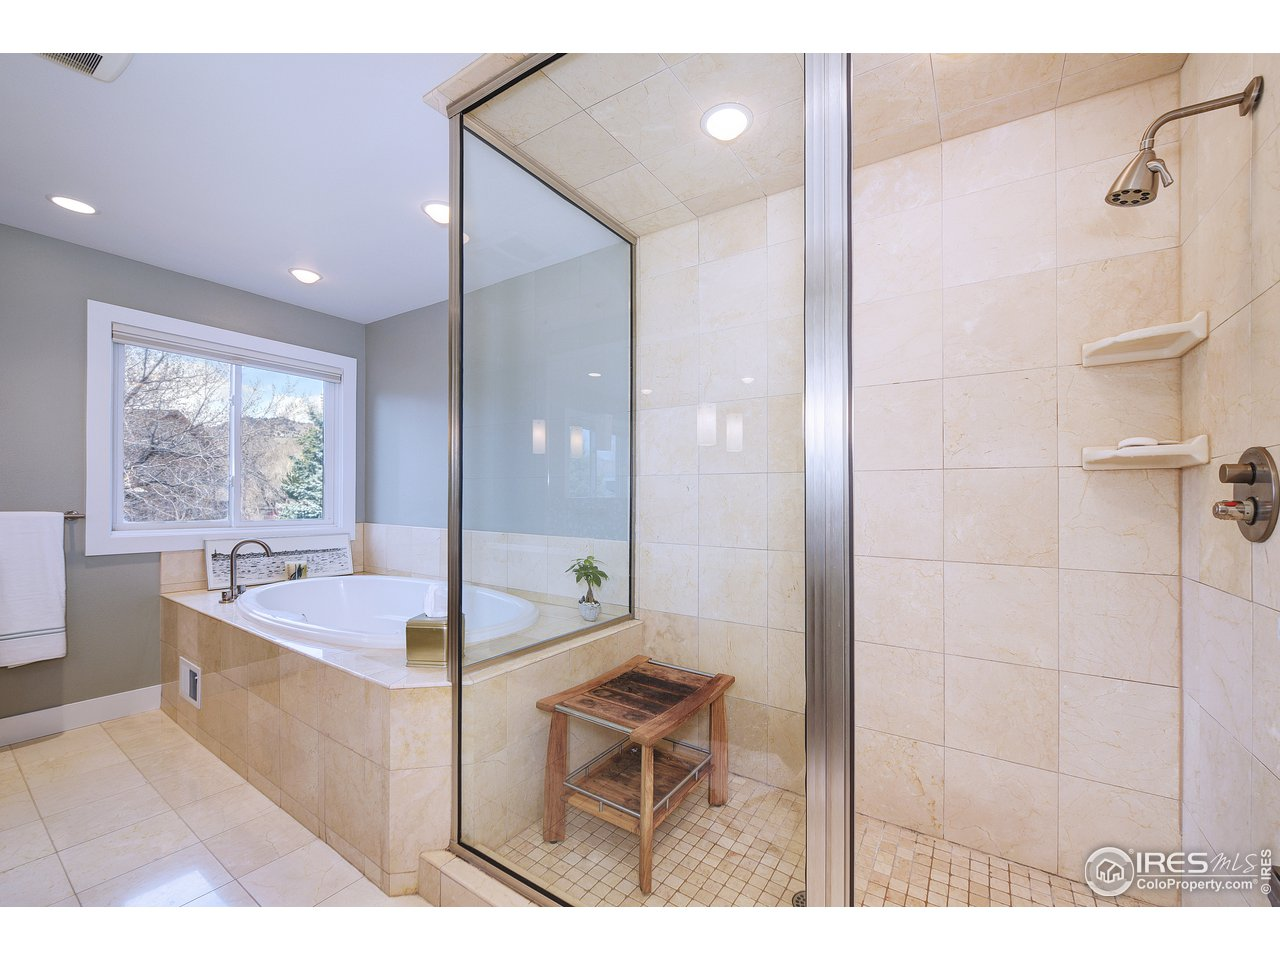 Steam shower and jetted spa tub